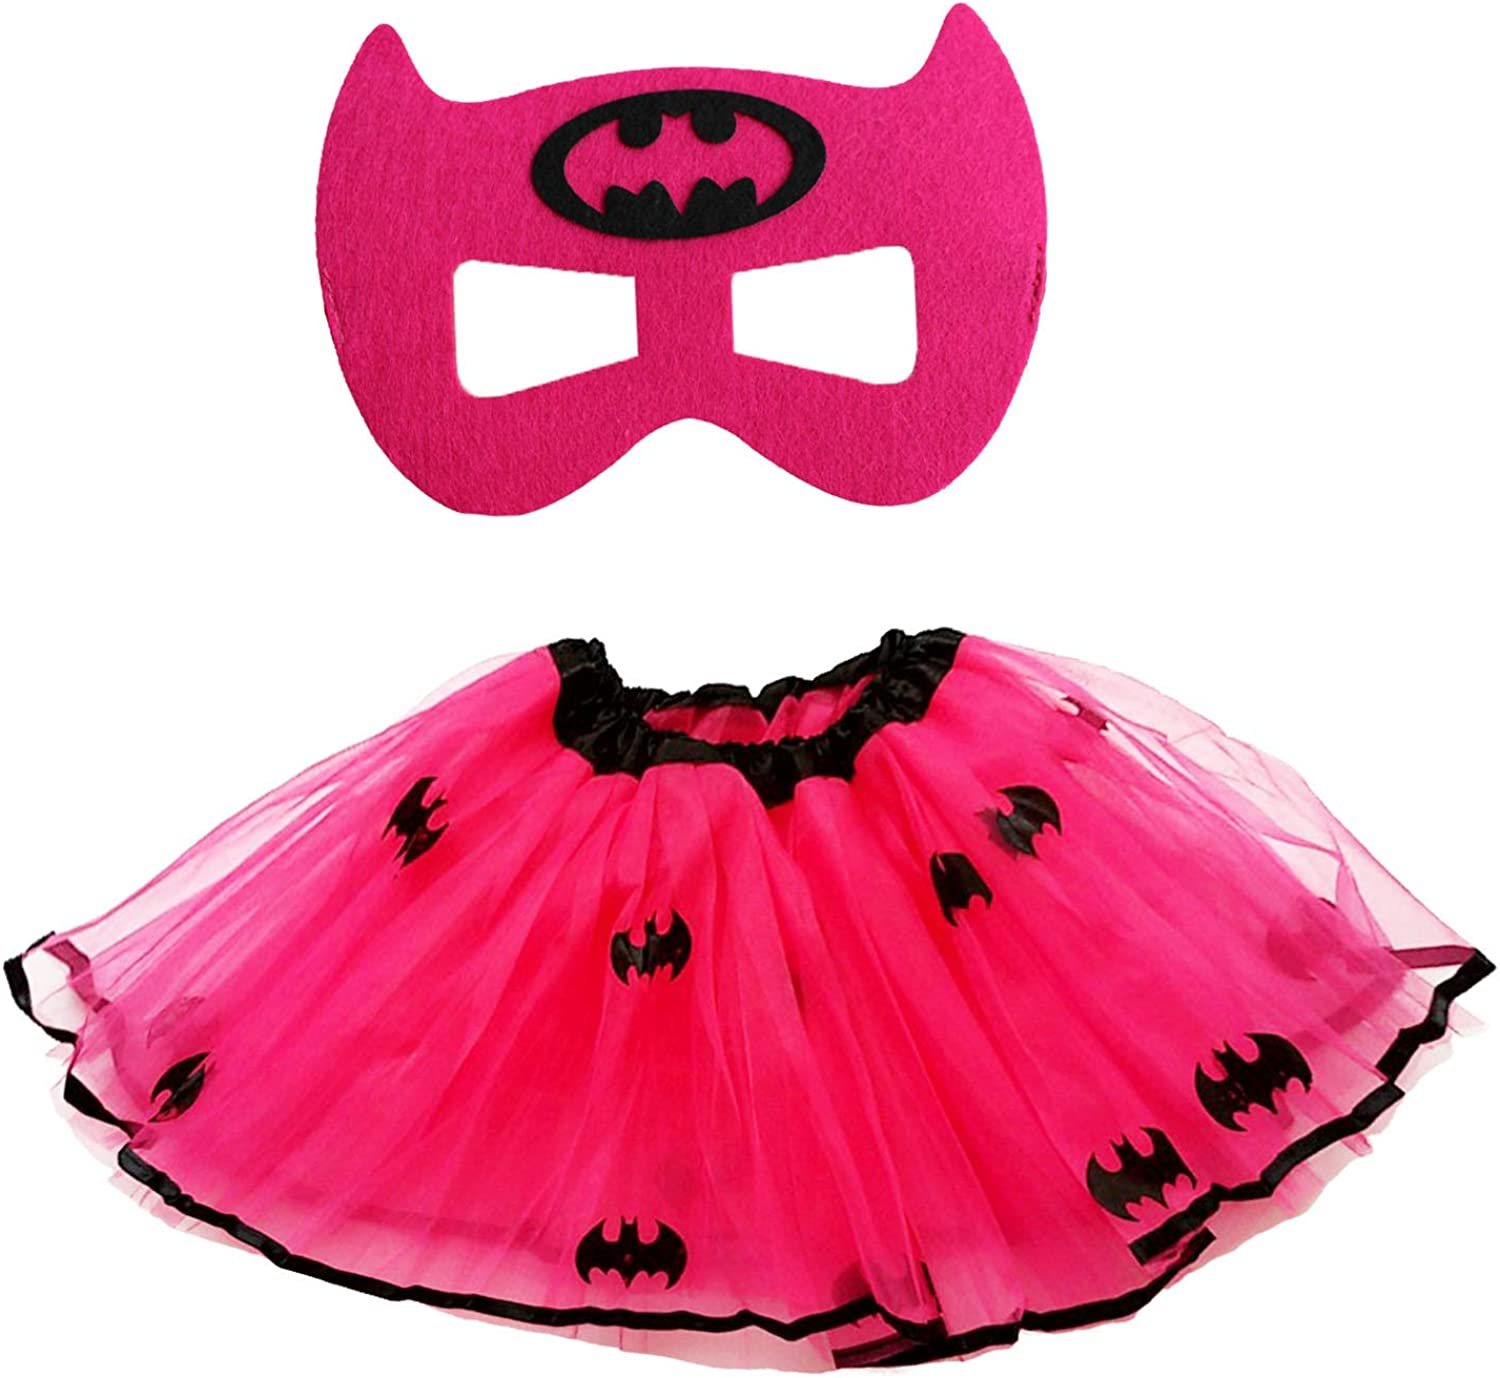 Danballto Princess Costume Birthday Party Fancy Dress Up for Girls with Accessories 2-8 Years